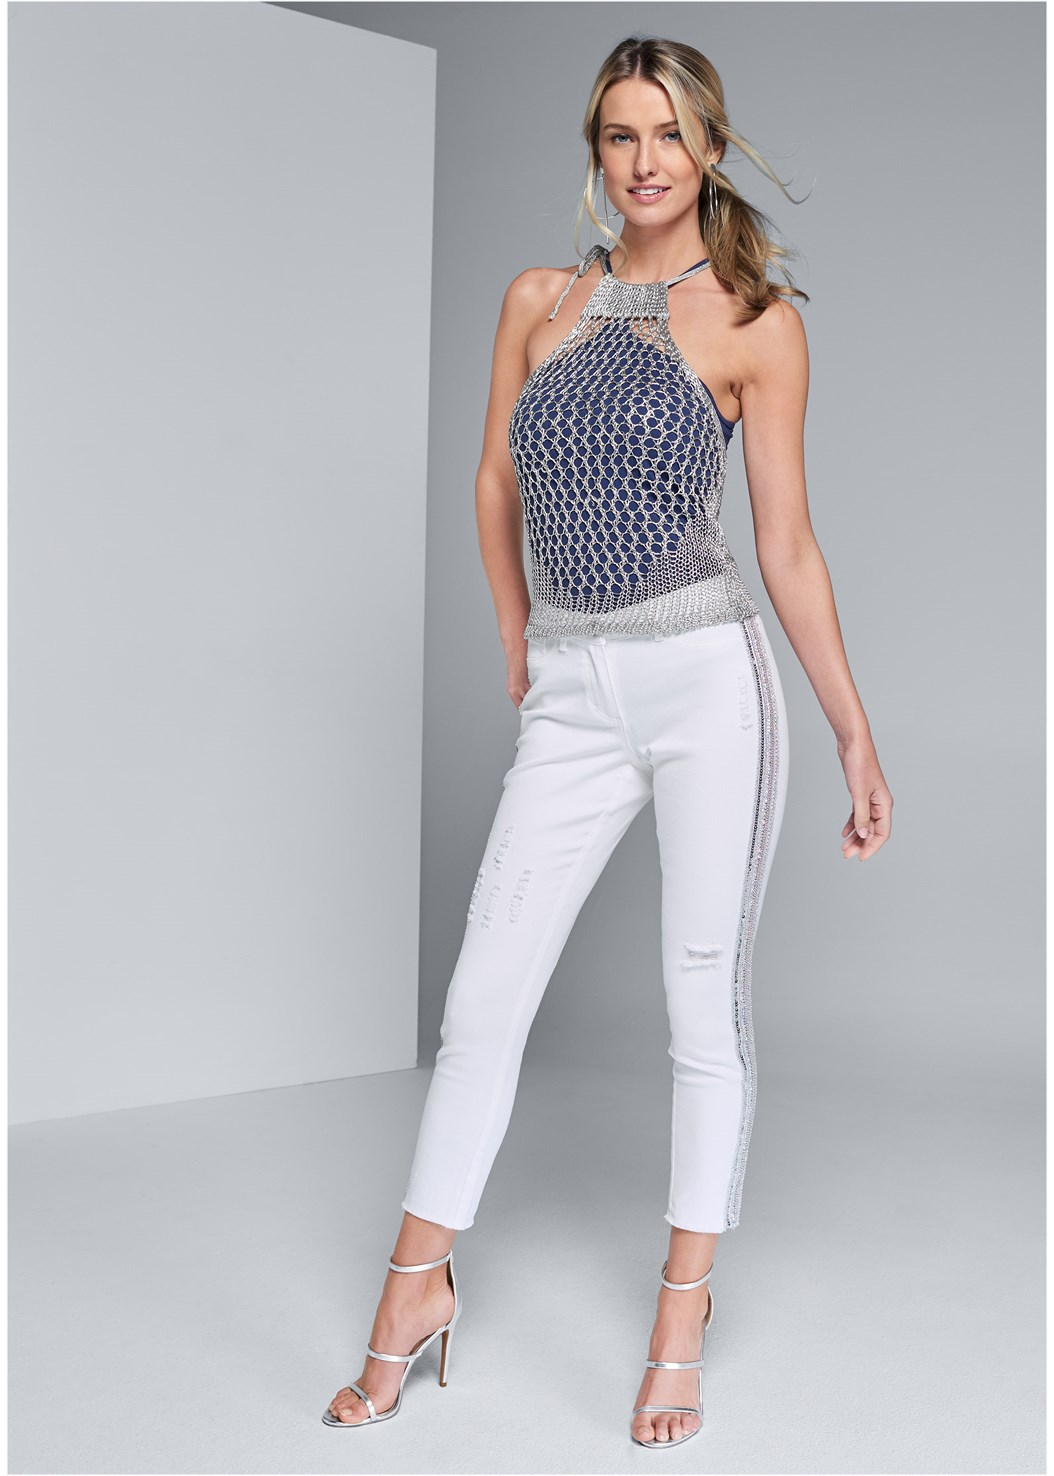 Beaded Side Stripe Jeans,Seamless High Neck Top,High Heel Strappy Sandals,Hoop Detail Earrings,Fringe Crossbody,Circular Straw Bag